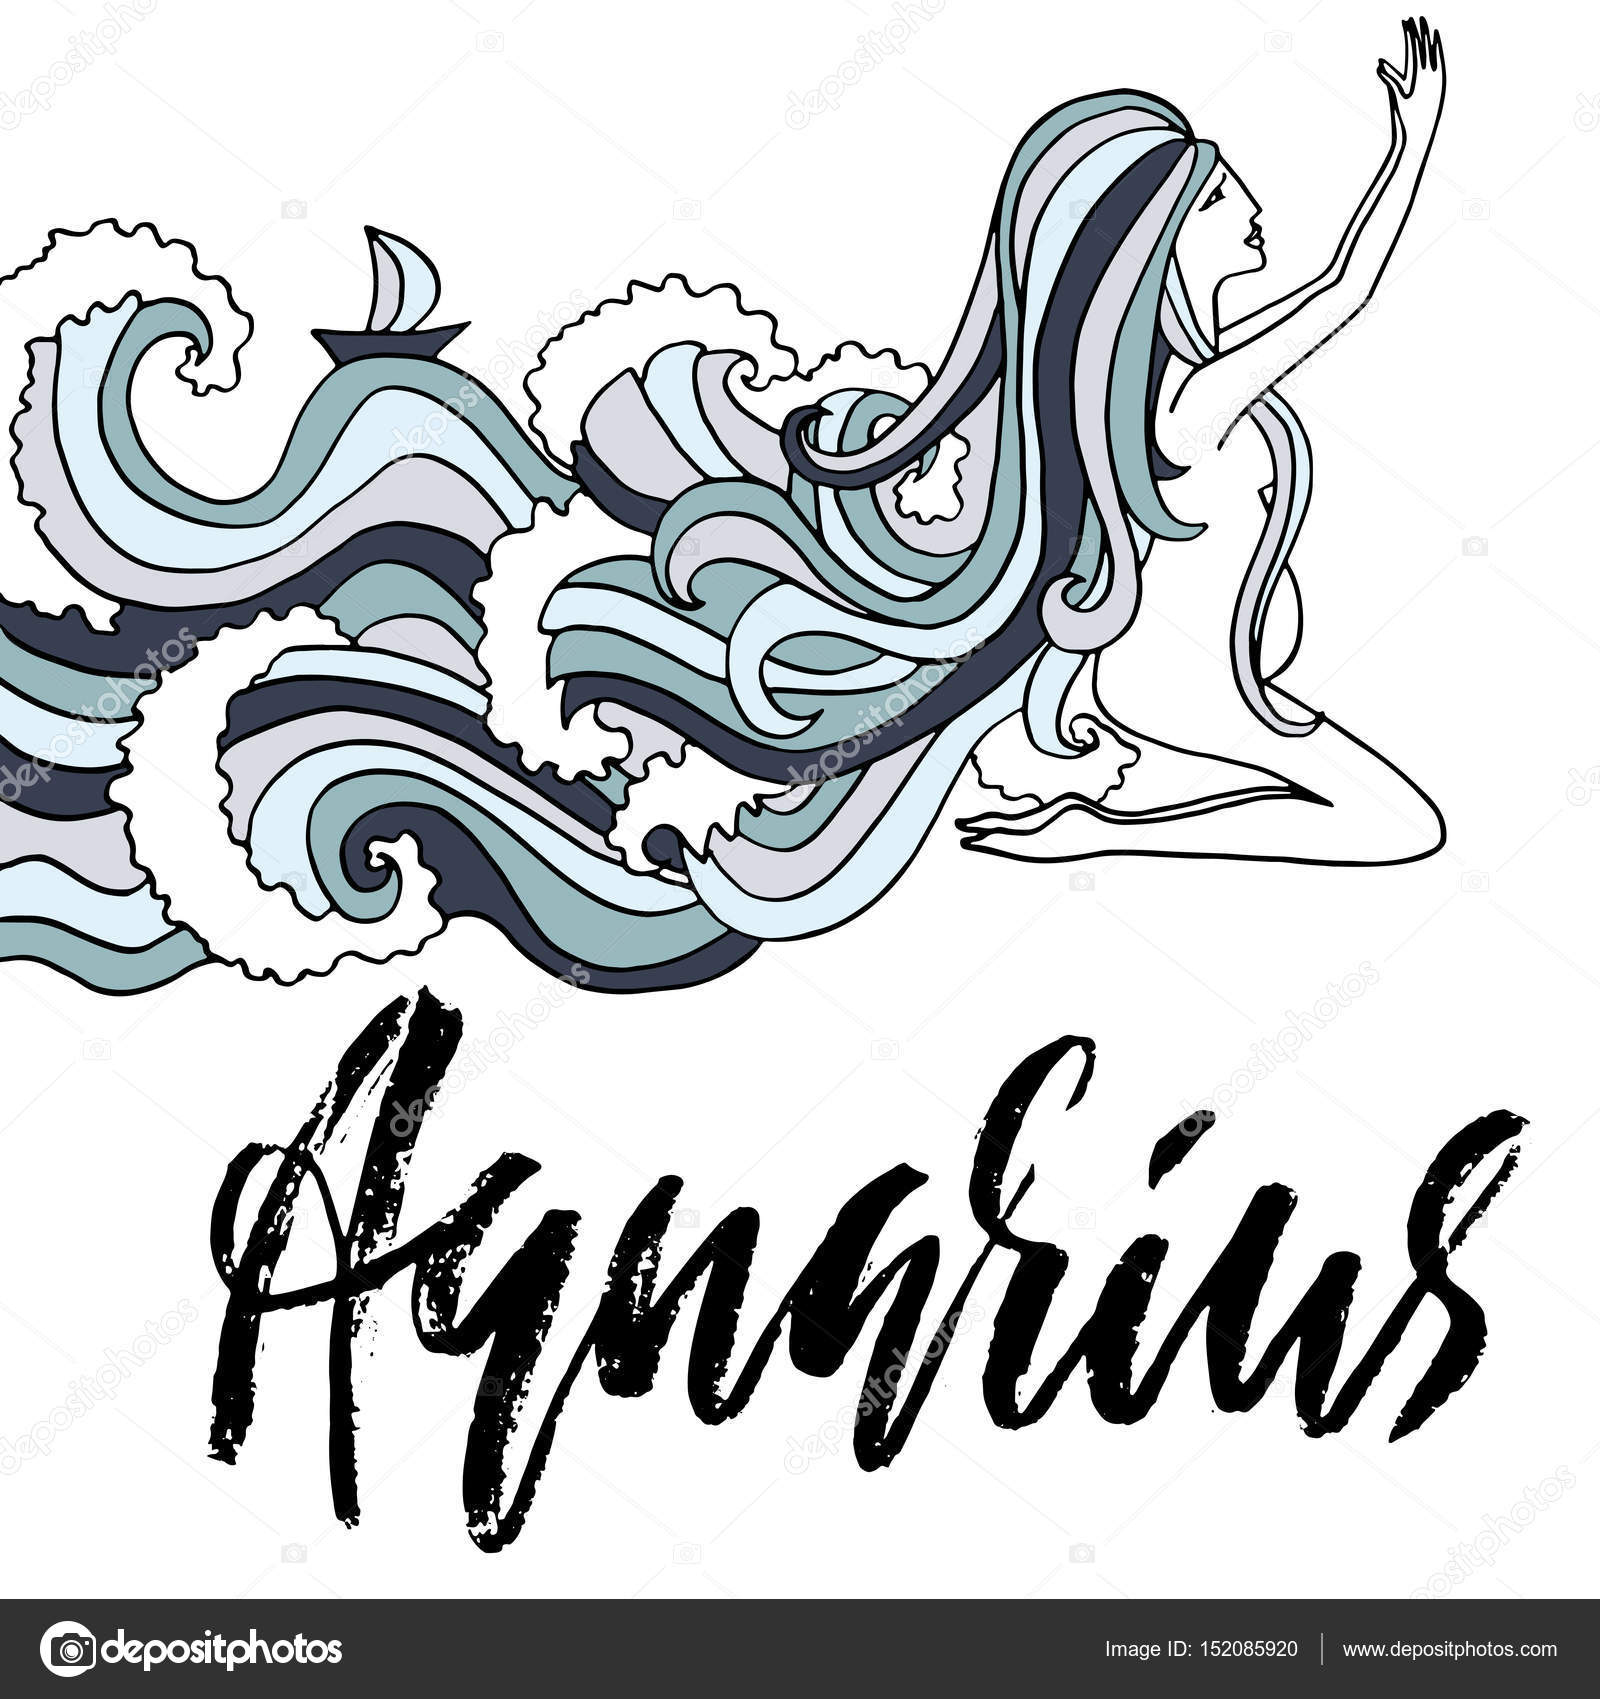 Astrology Vector Illustration Sketch Isolated On White Background Handwritten Lettering Design Girl With Ocean Wave Hairs By Rtyt01mailru